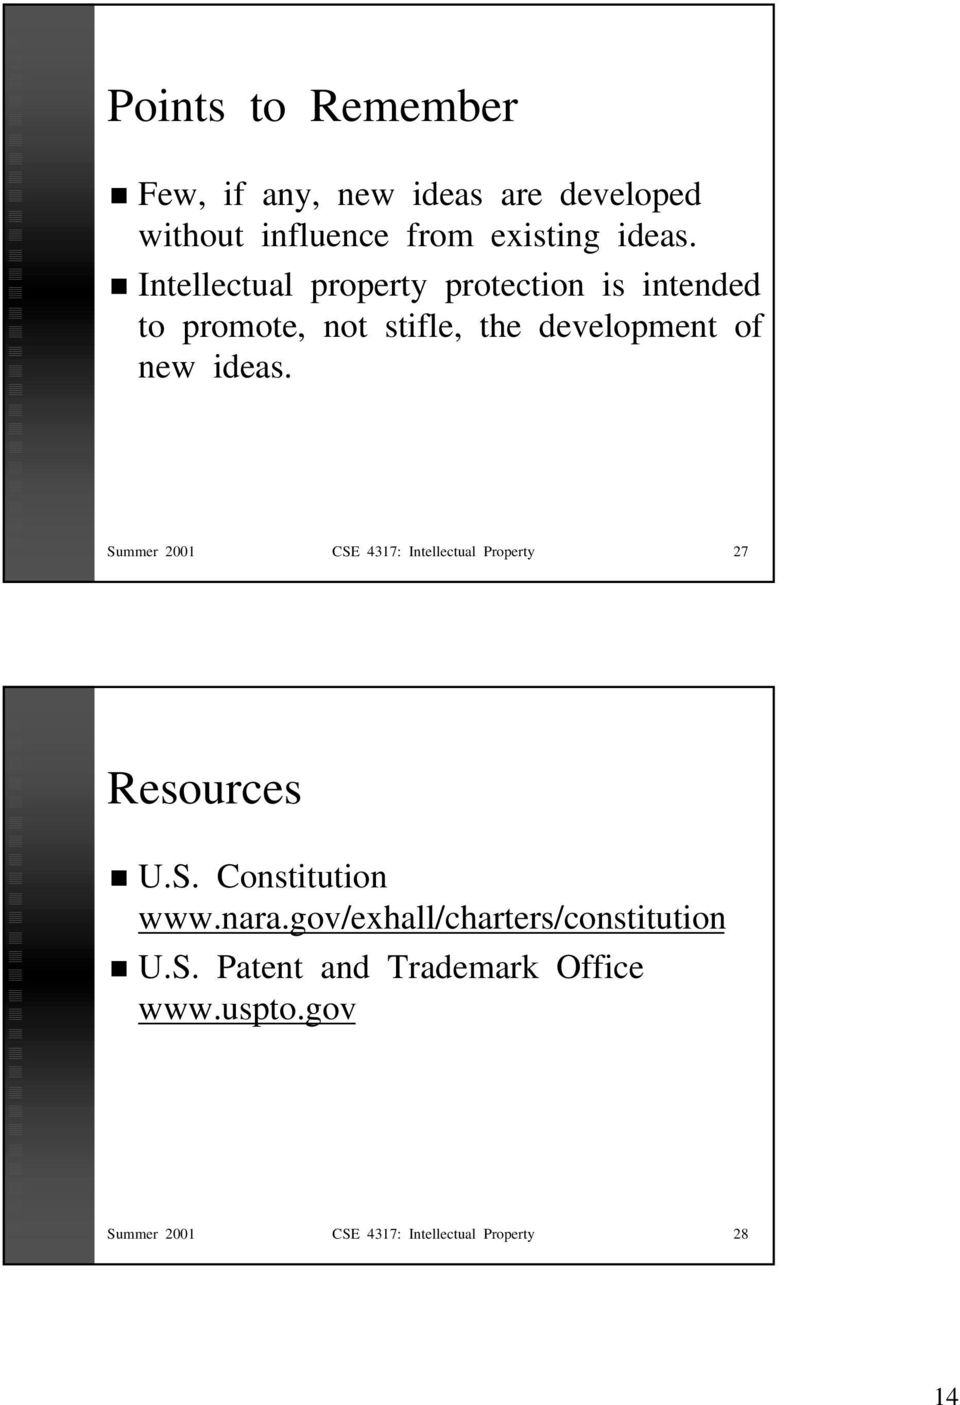 Summer 2001 CSE 4317: Intellectual Property 27 Resources U.S. Constitution www.nara.